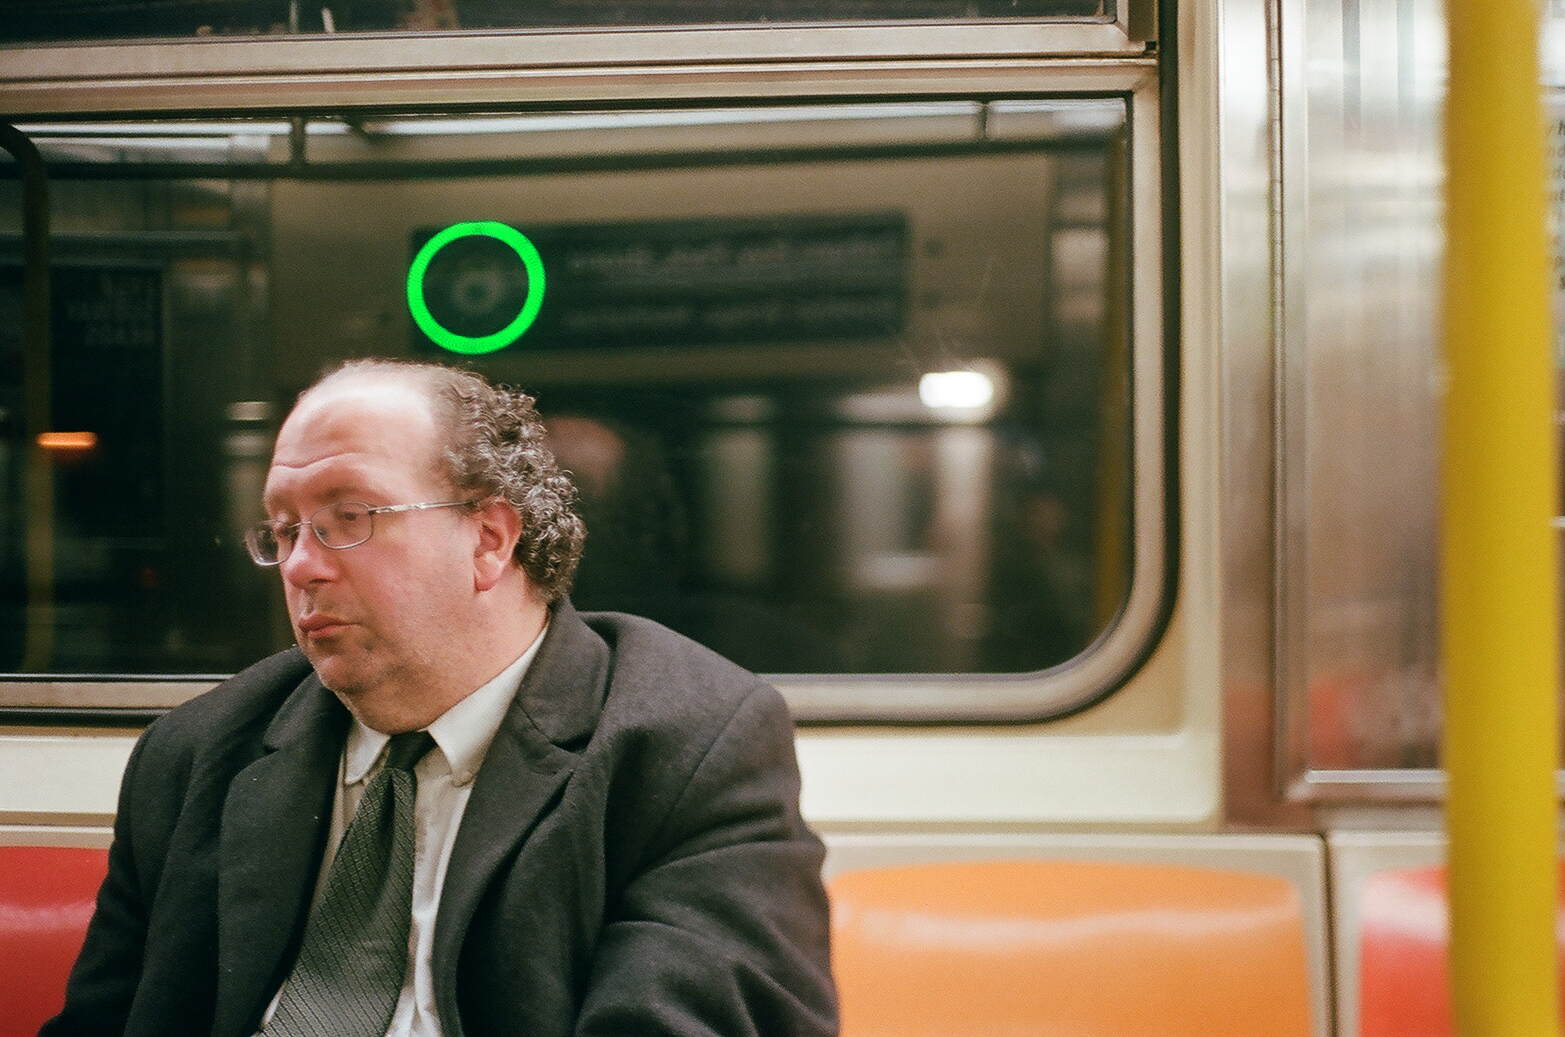 Business Man on Subway #1_Film Photography_NYC_Joe Curry Photography_2018.jpg